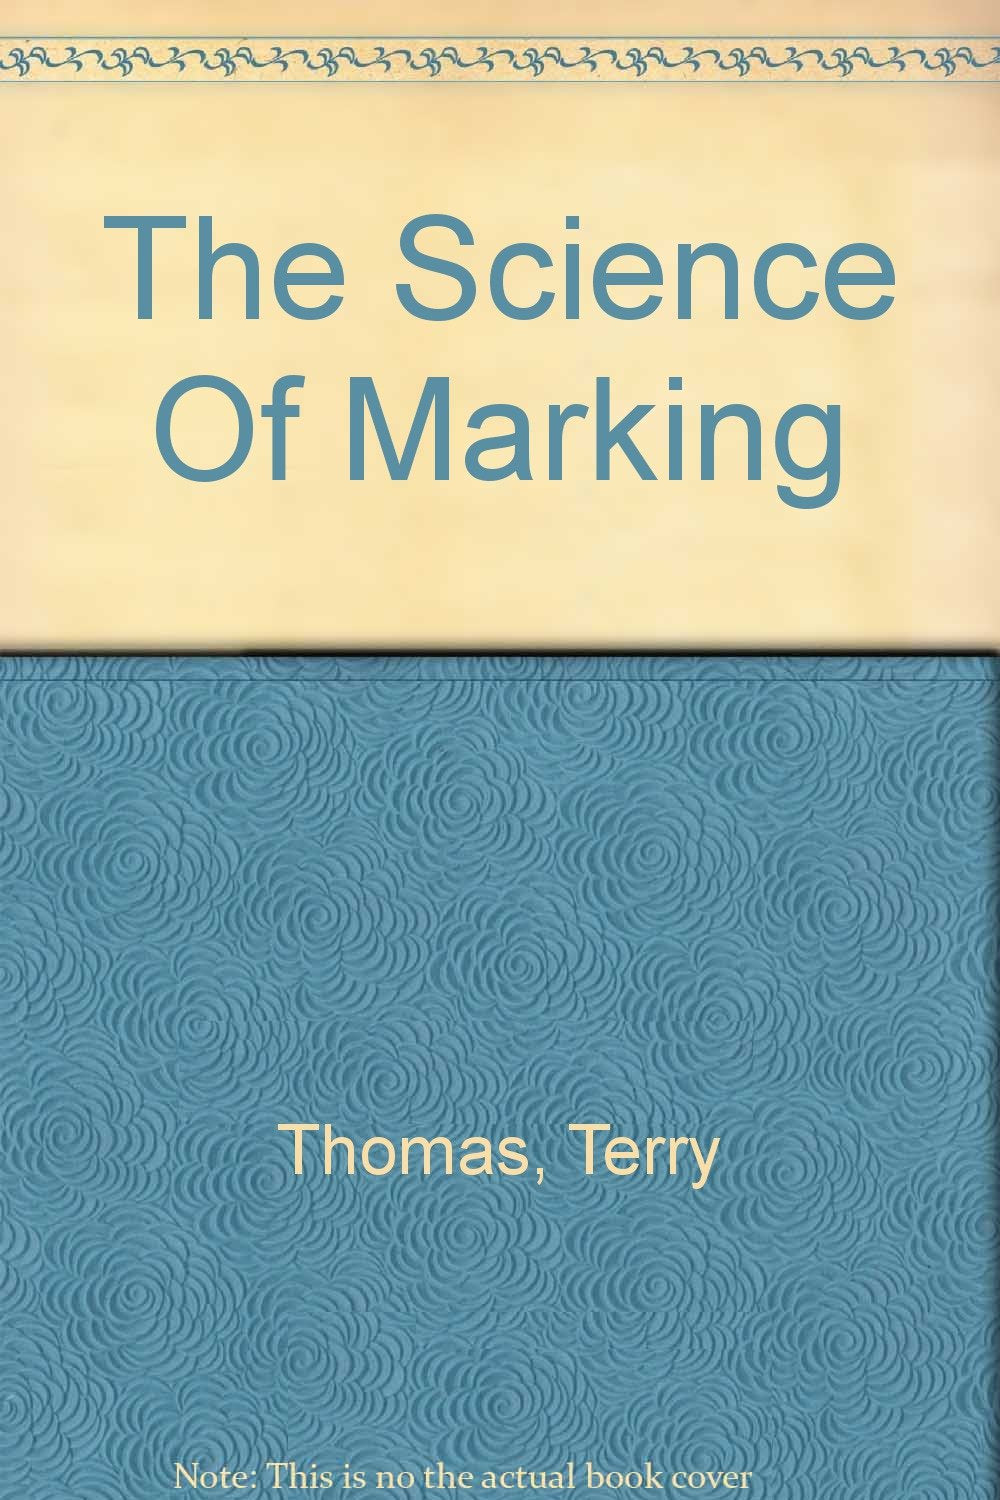 The Science Of Marking [Hardcover] Thomas, Terry